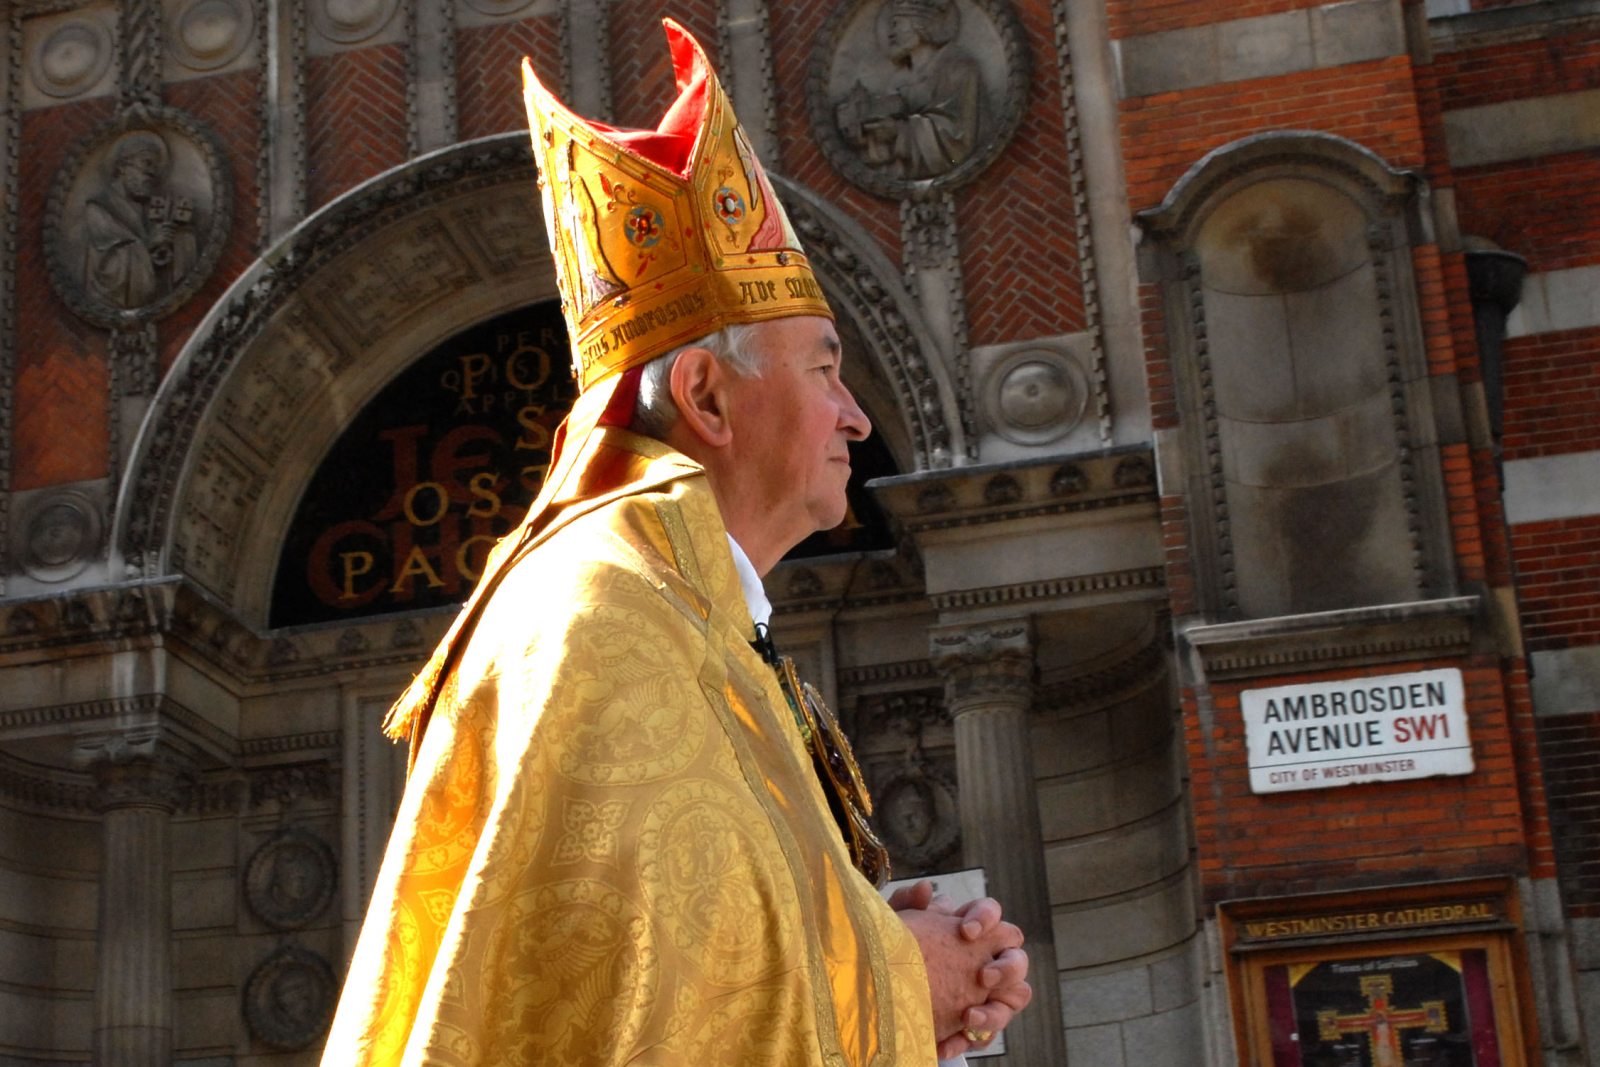 Cardinal's Biography - Diocese of Westminster